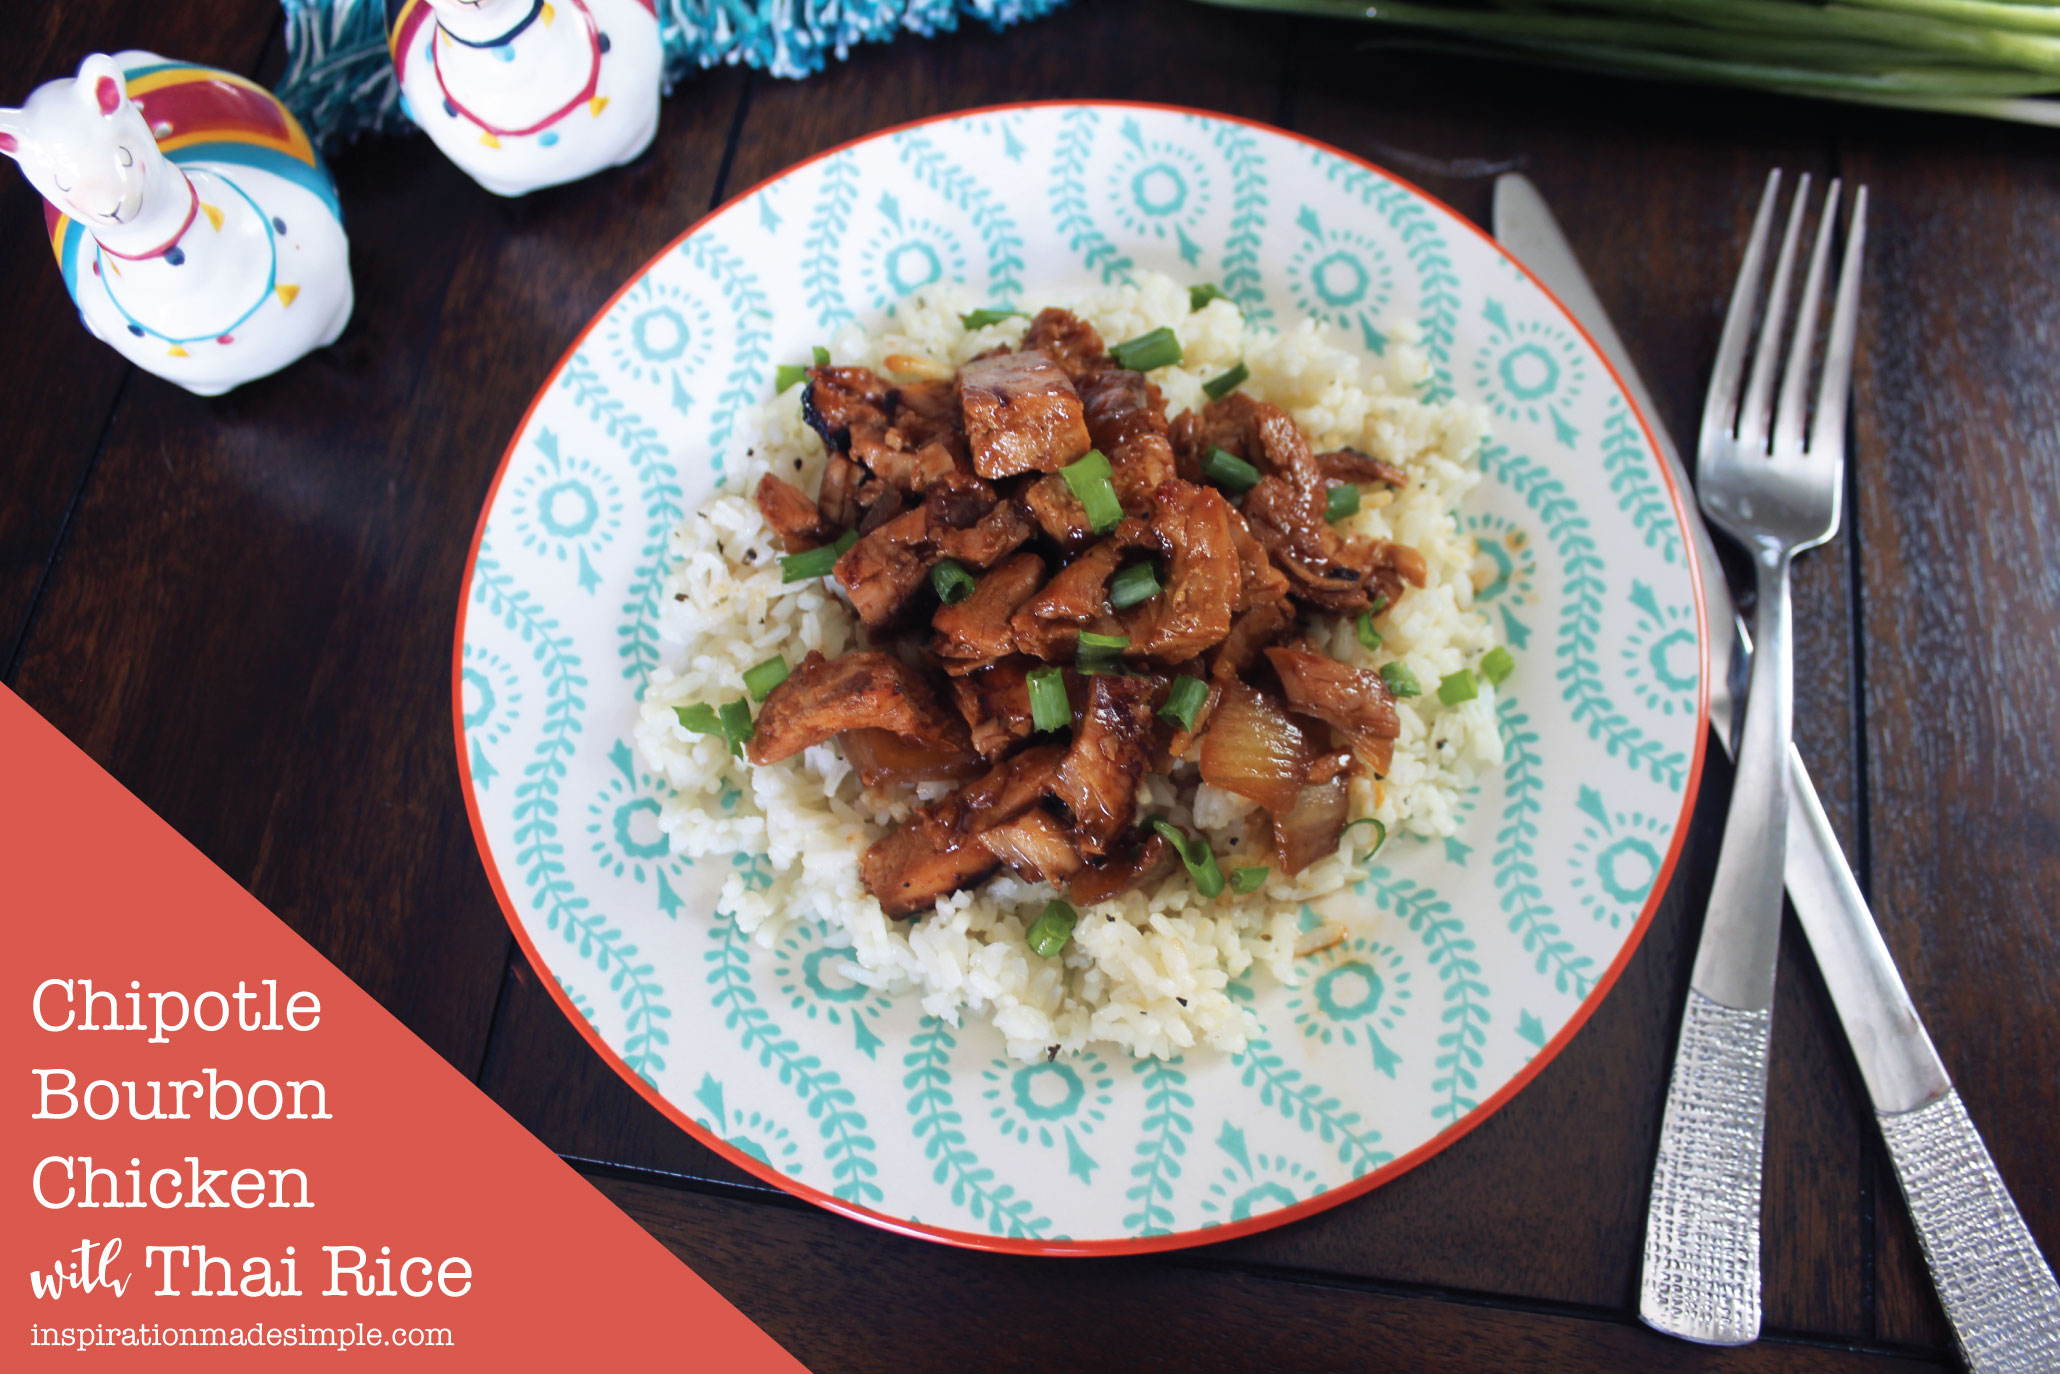 Chipotle Bourbon Chicken with Thai Rice